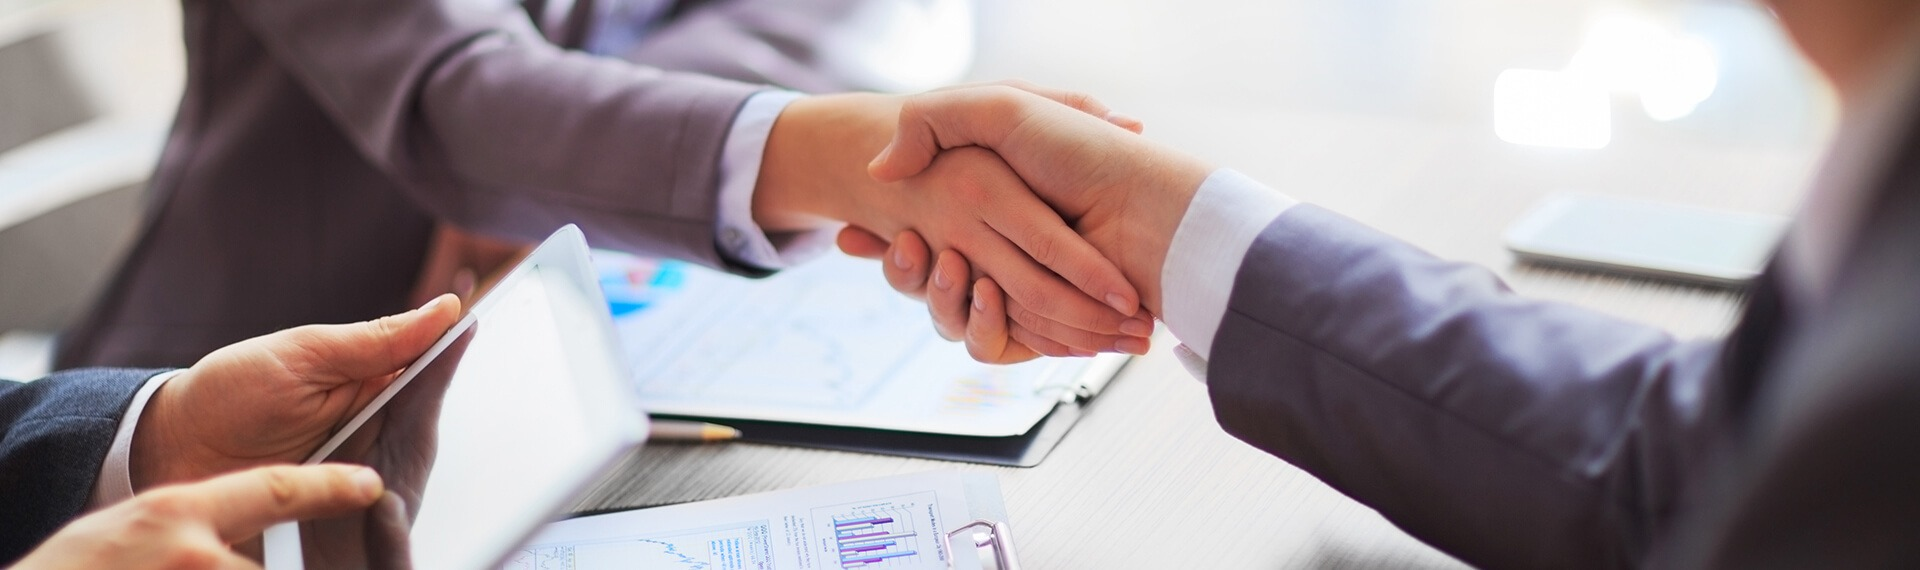 Businessman shaking hands with a business solicitor